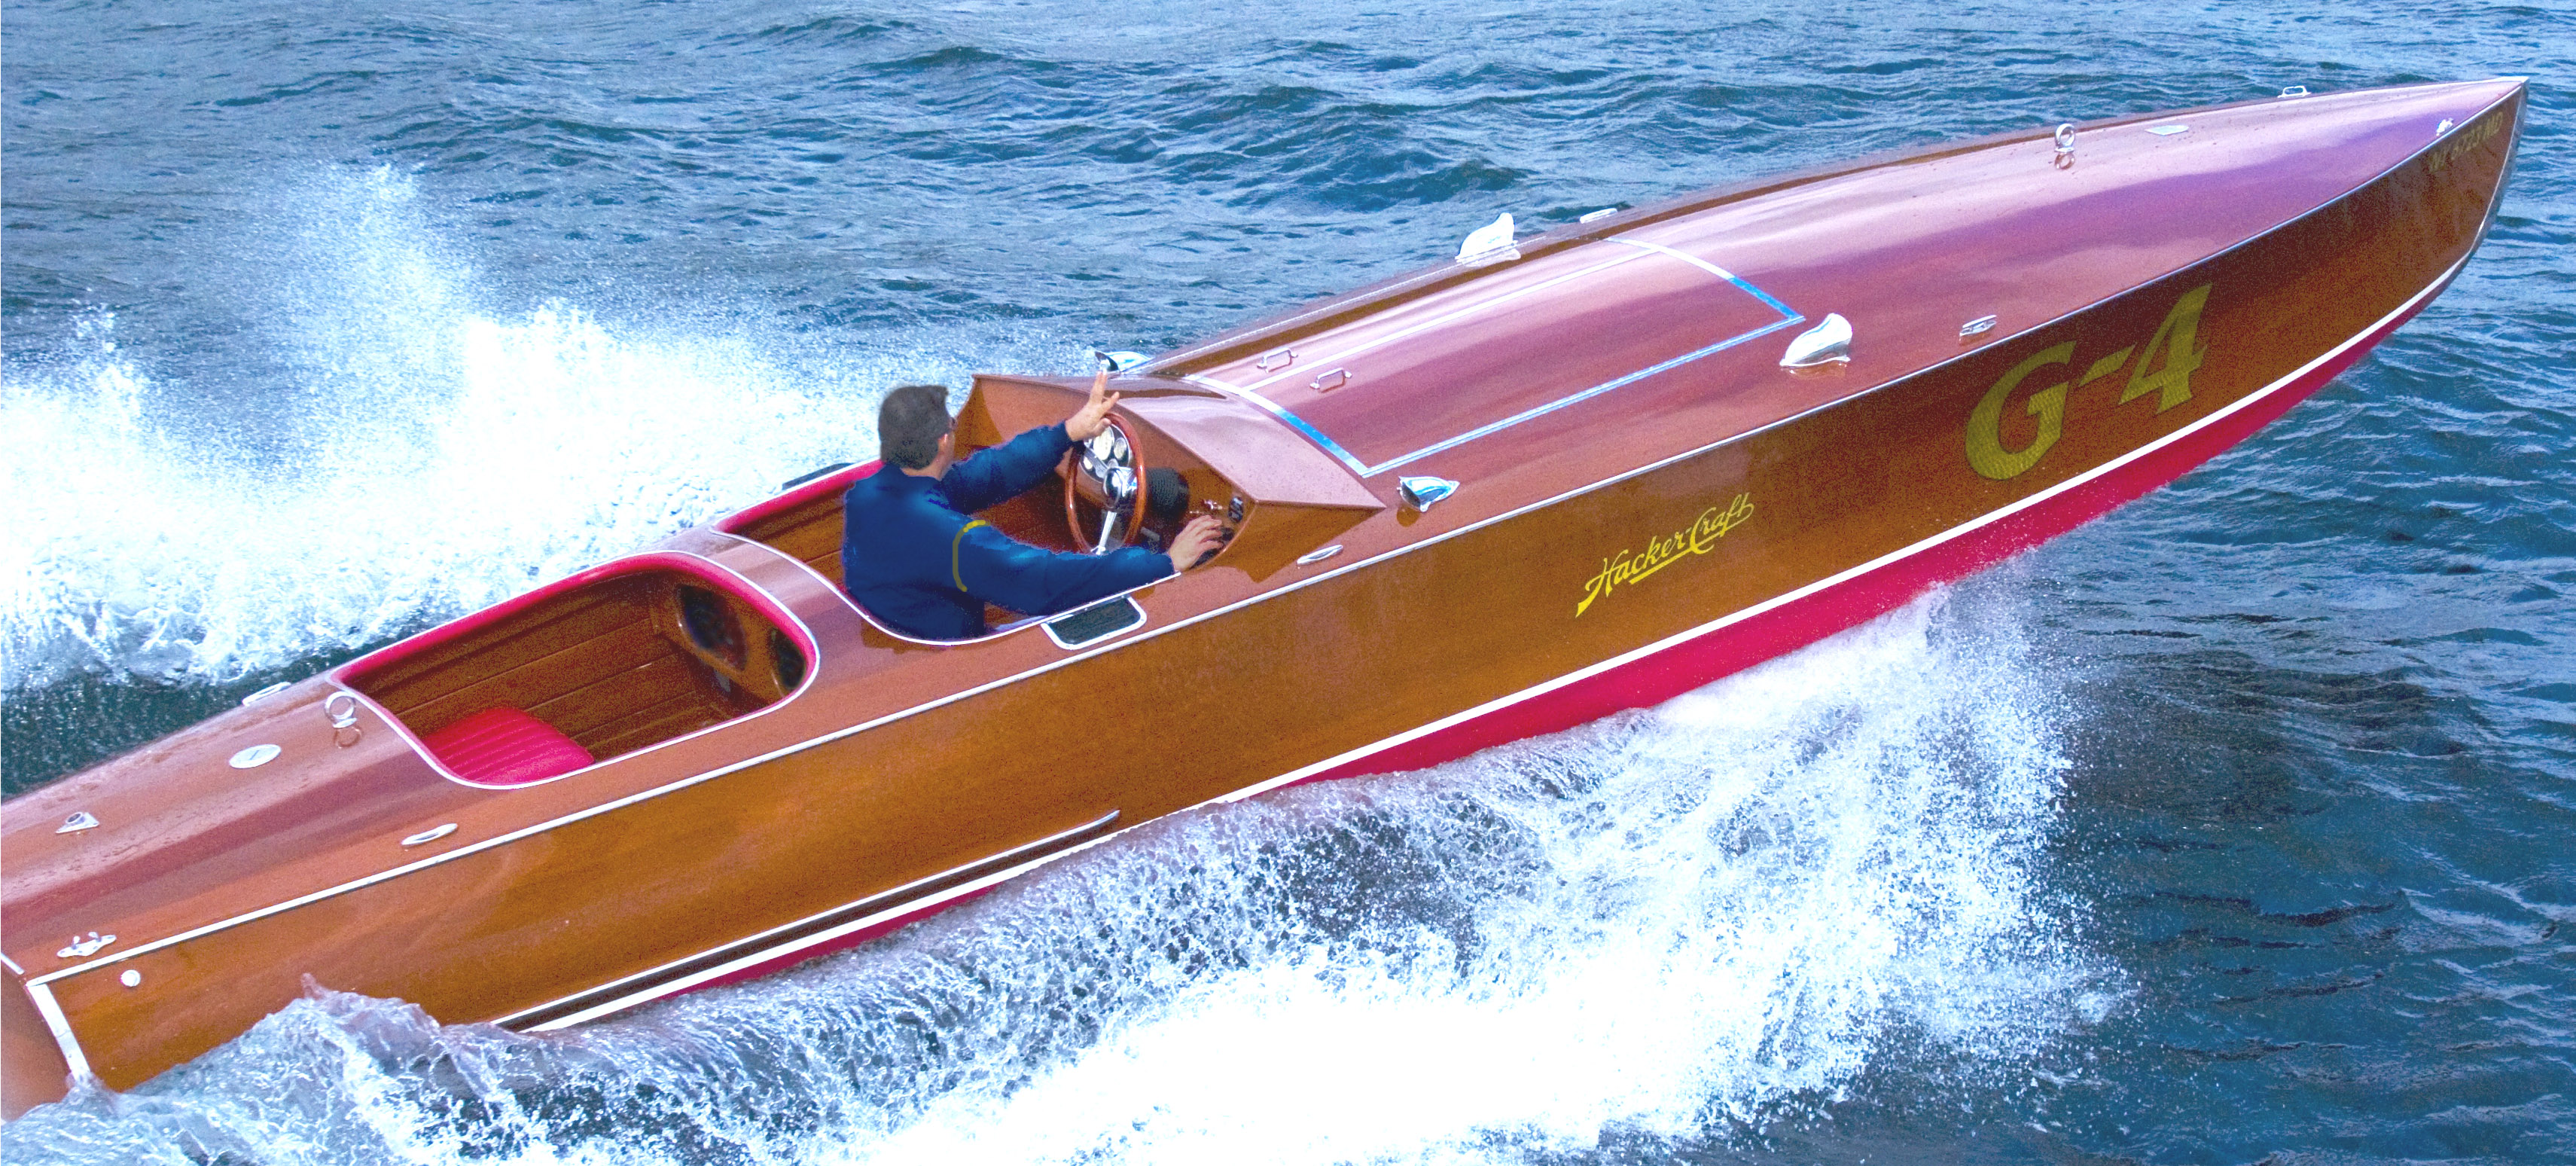 10 Luxurious Boats